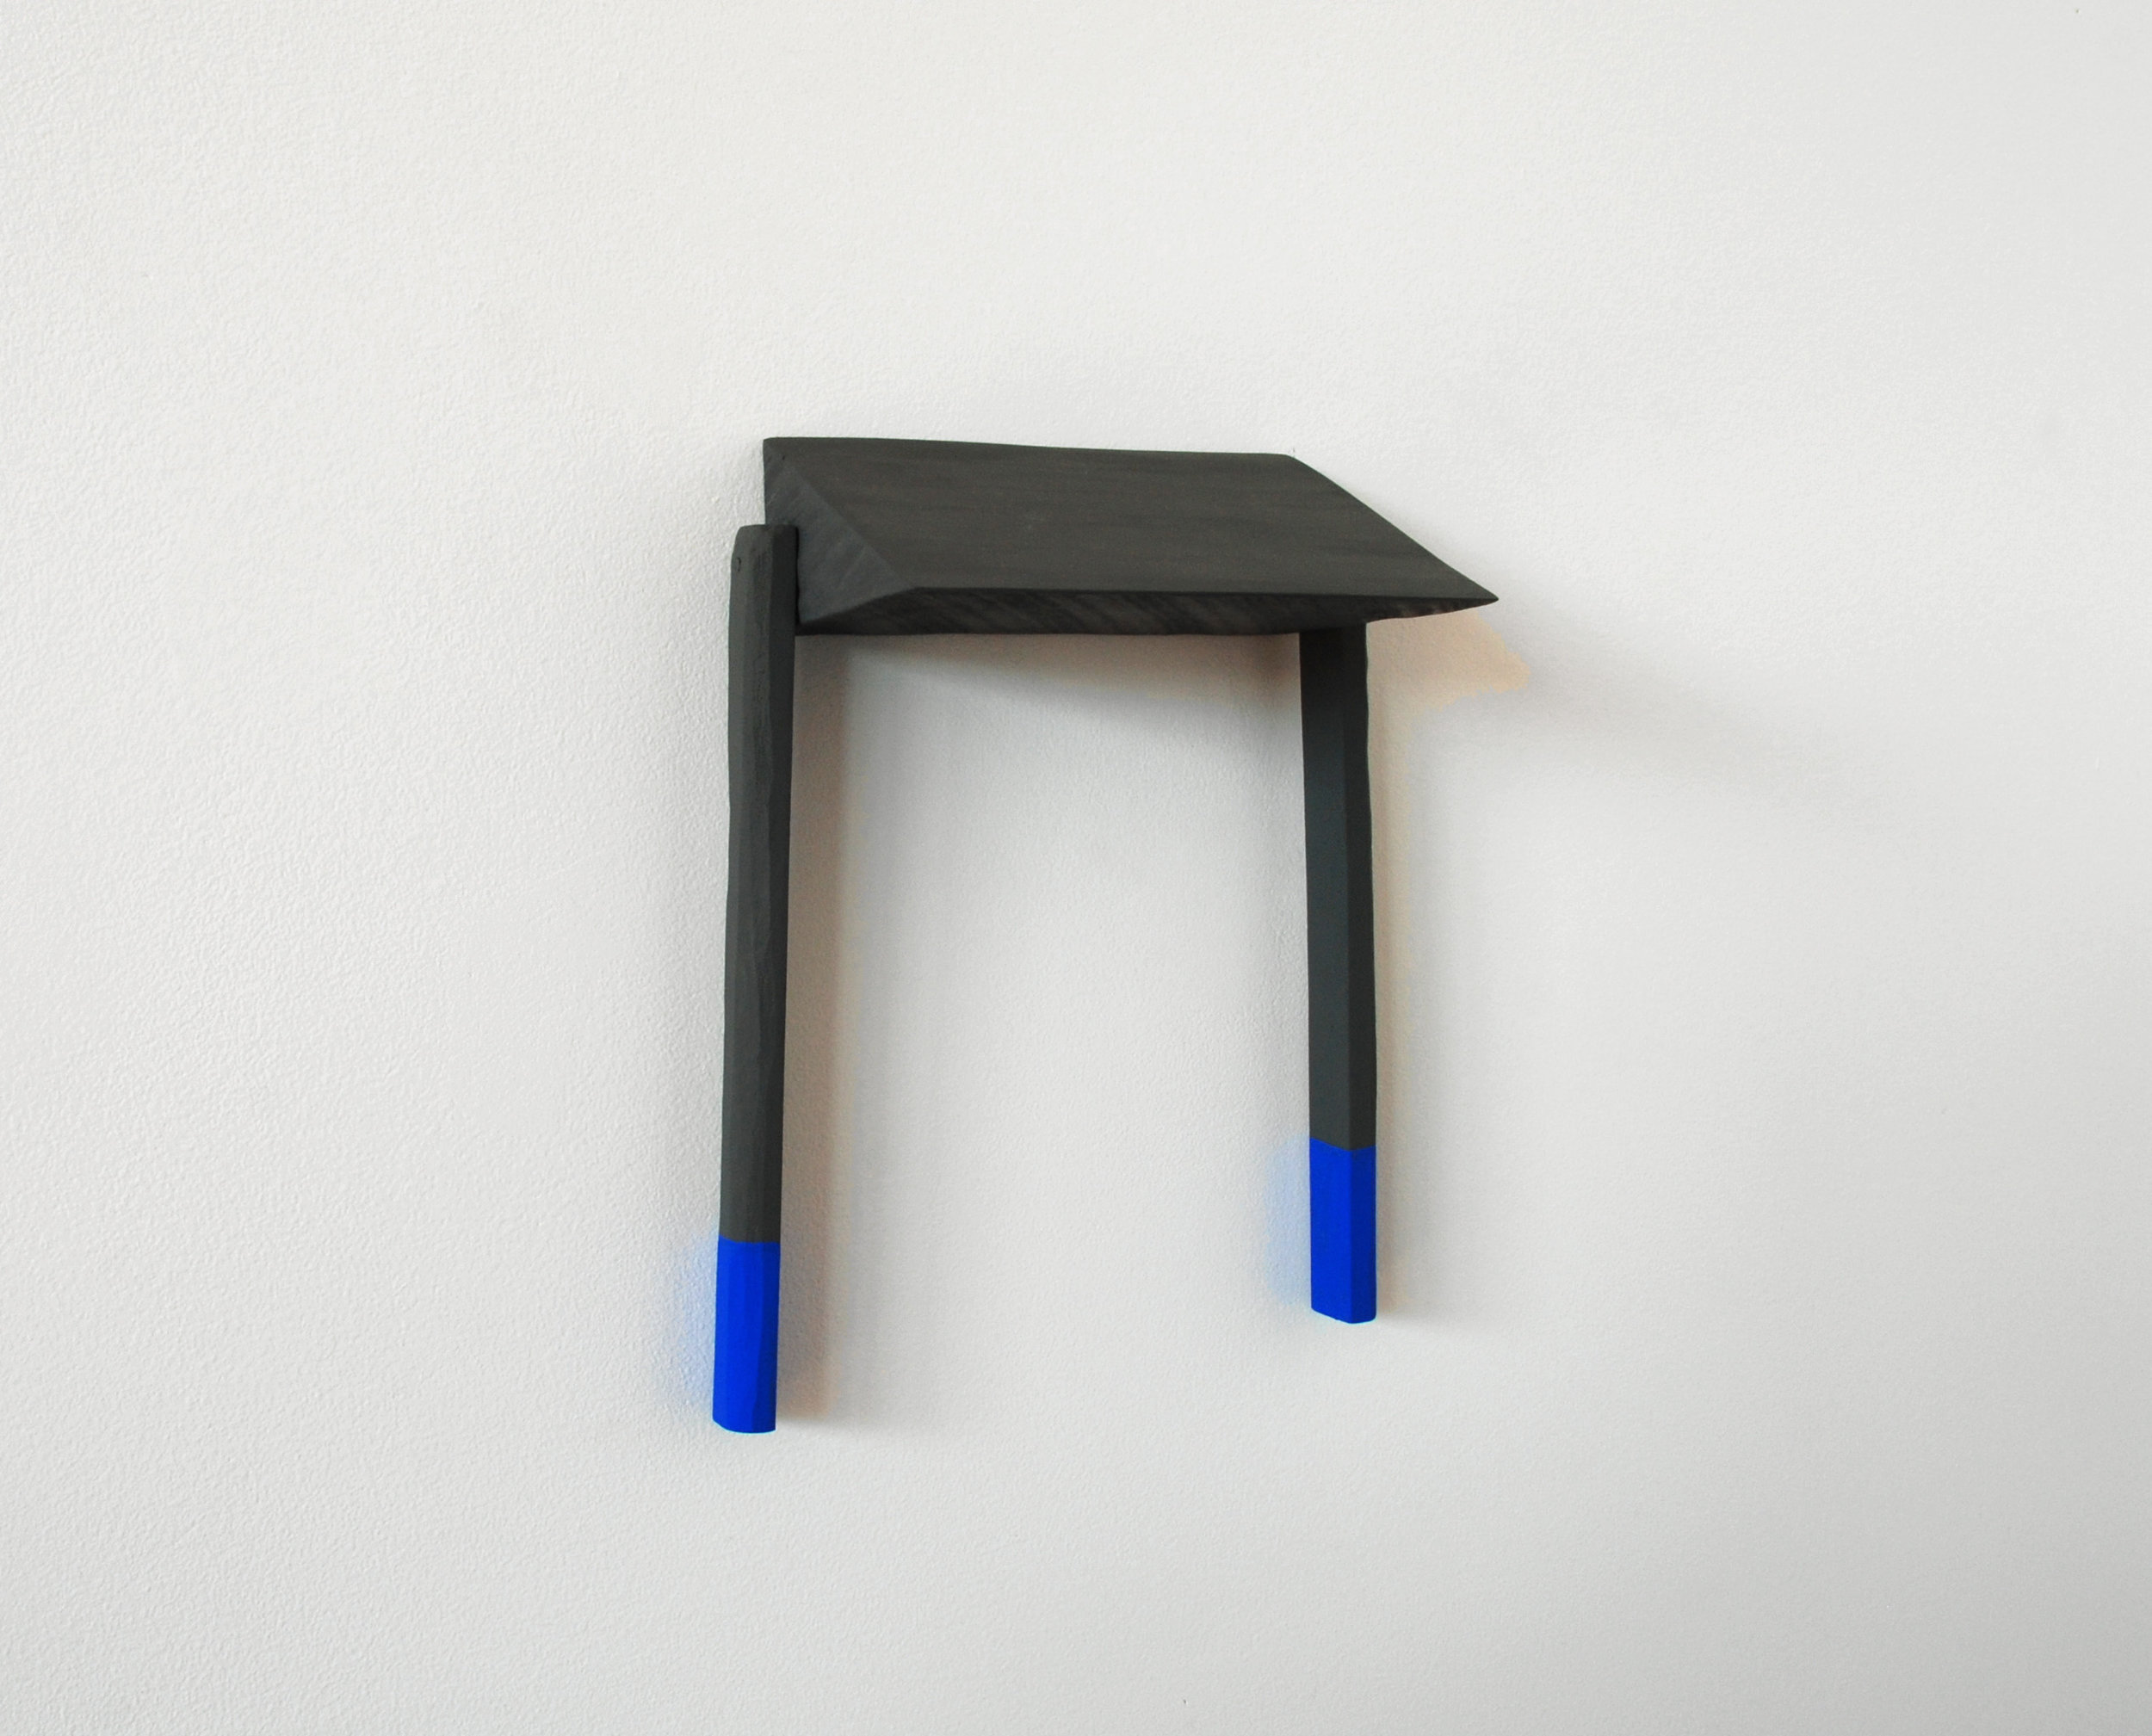 Untitled, 2012, wood, paint, nails, 7 x 3 ½ x 9 ¼""